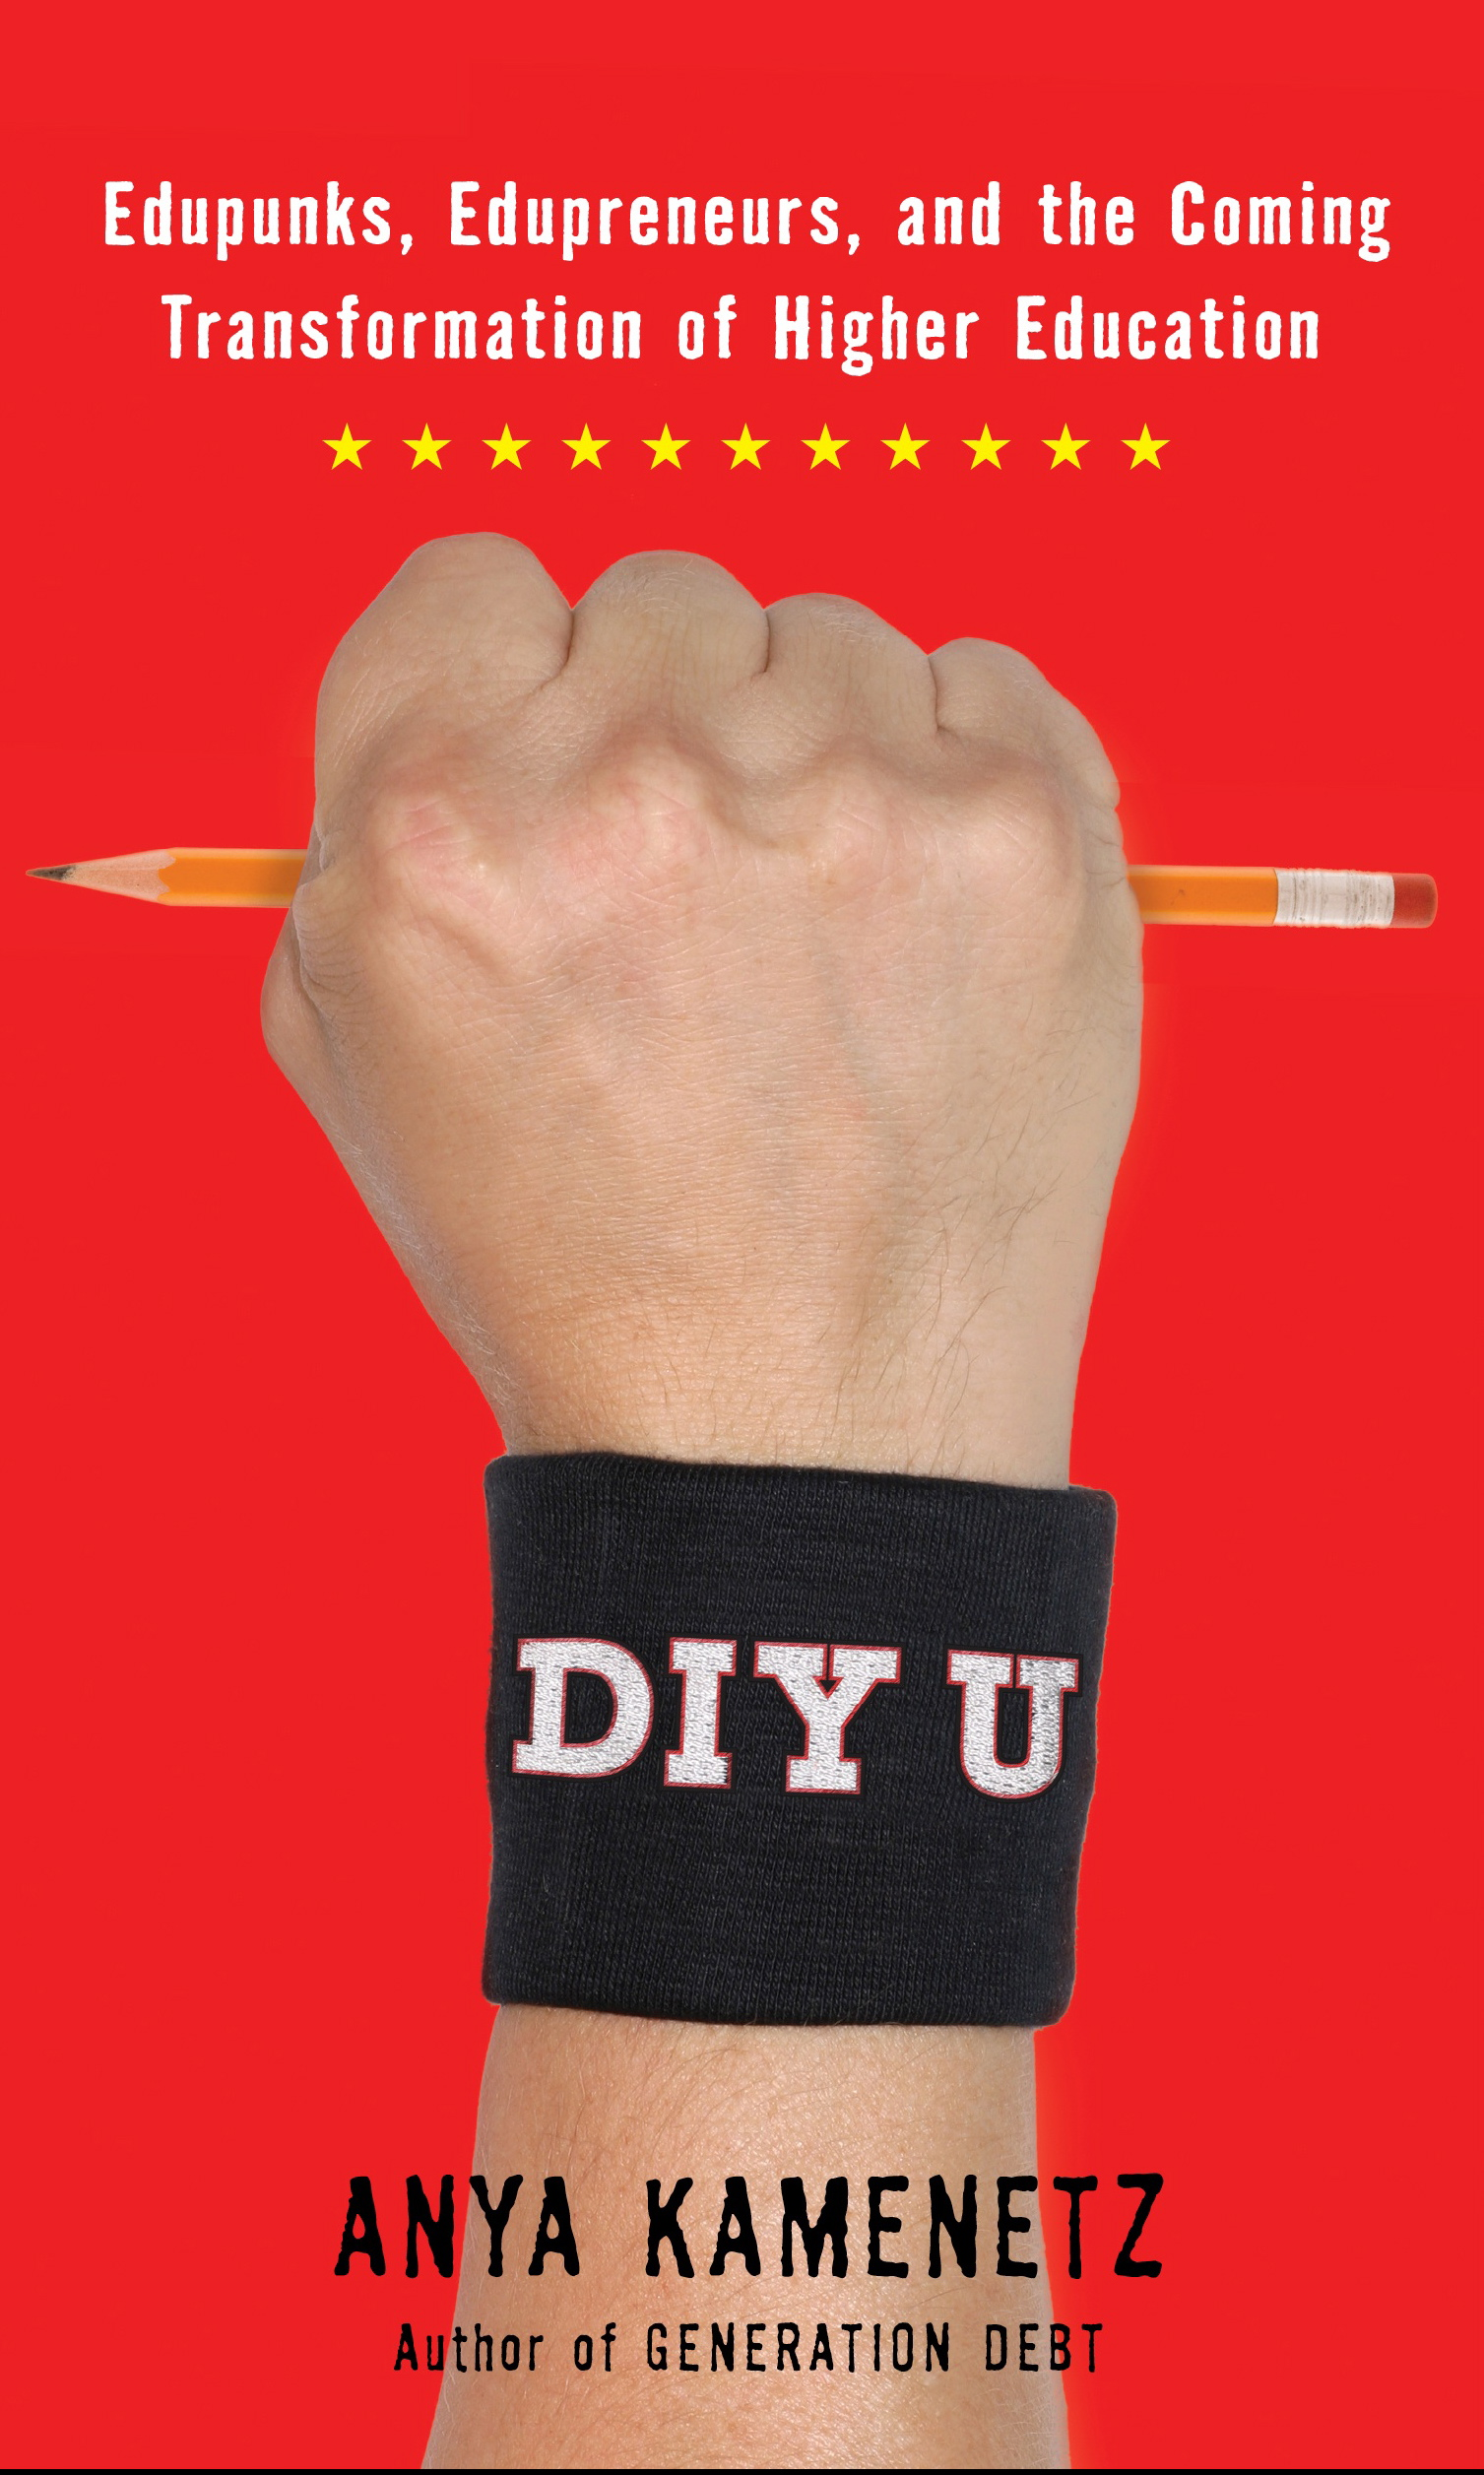 Image for DIY U: Edupunks, Edupreneurs, and the Coming Transformation of Higher Education